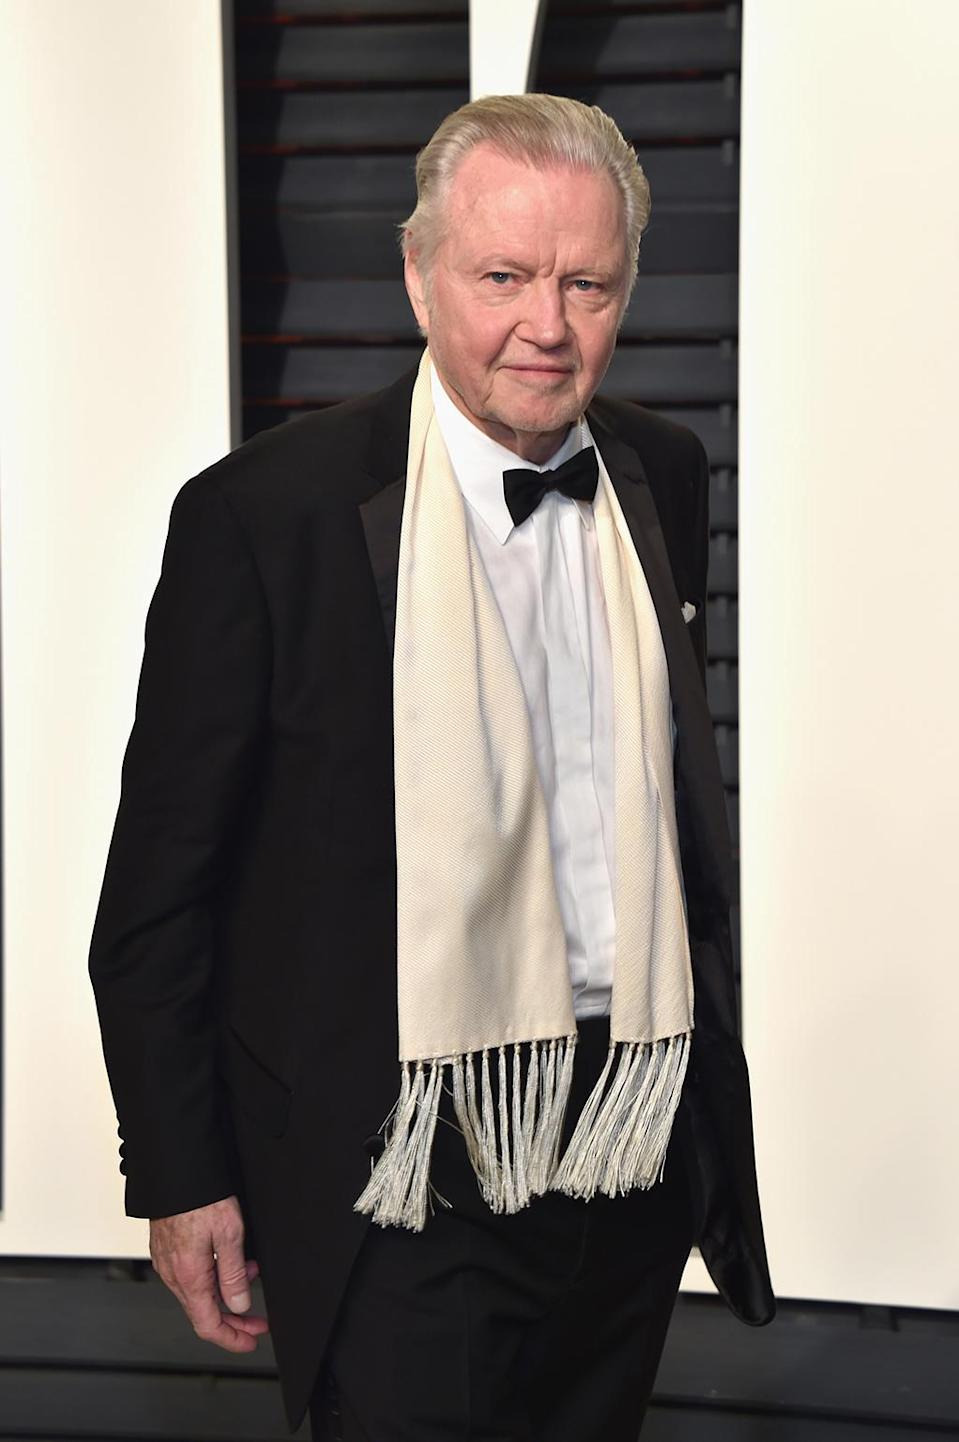 <p>Jon Voight attends the 2017 Vanity Fair Oscar Party hosted by Graydon Carter at Wallis Annenberg Center for the Performing Arts on February 26, 2017 in Beverly Hills, California. (Photo by Pascal Le Segretain/Getty Images) </p>